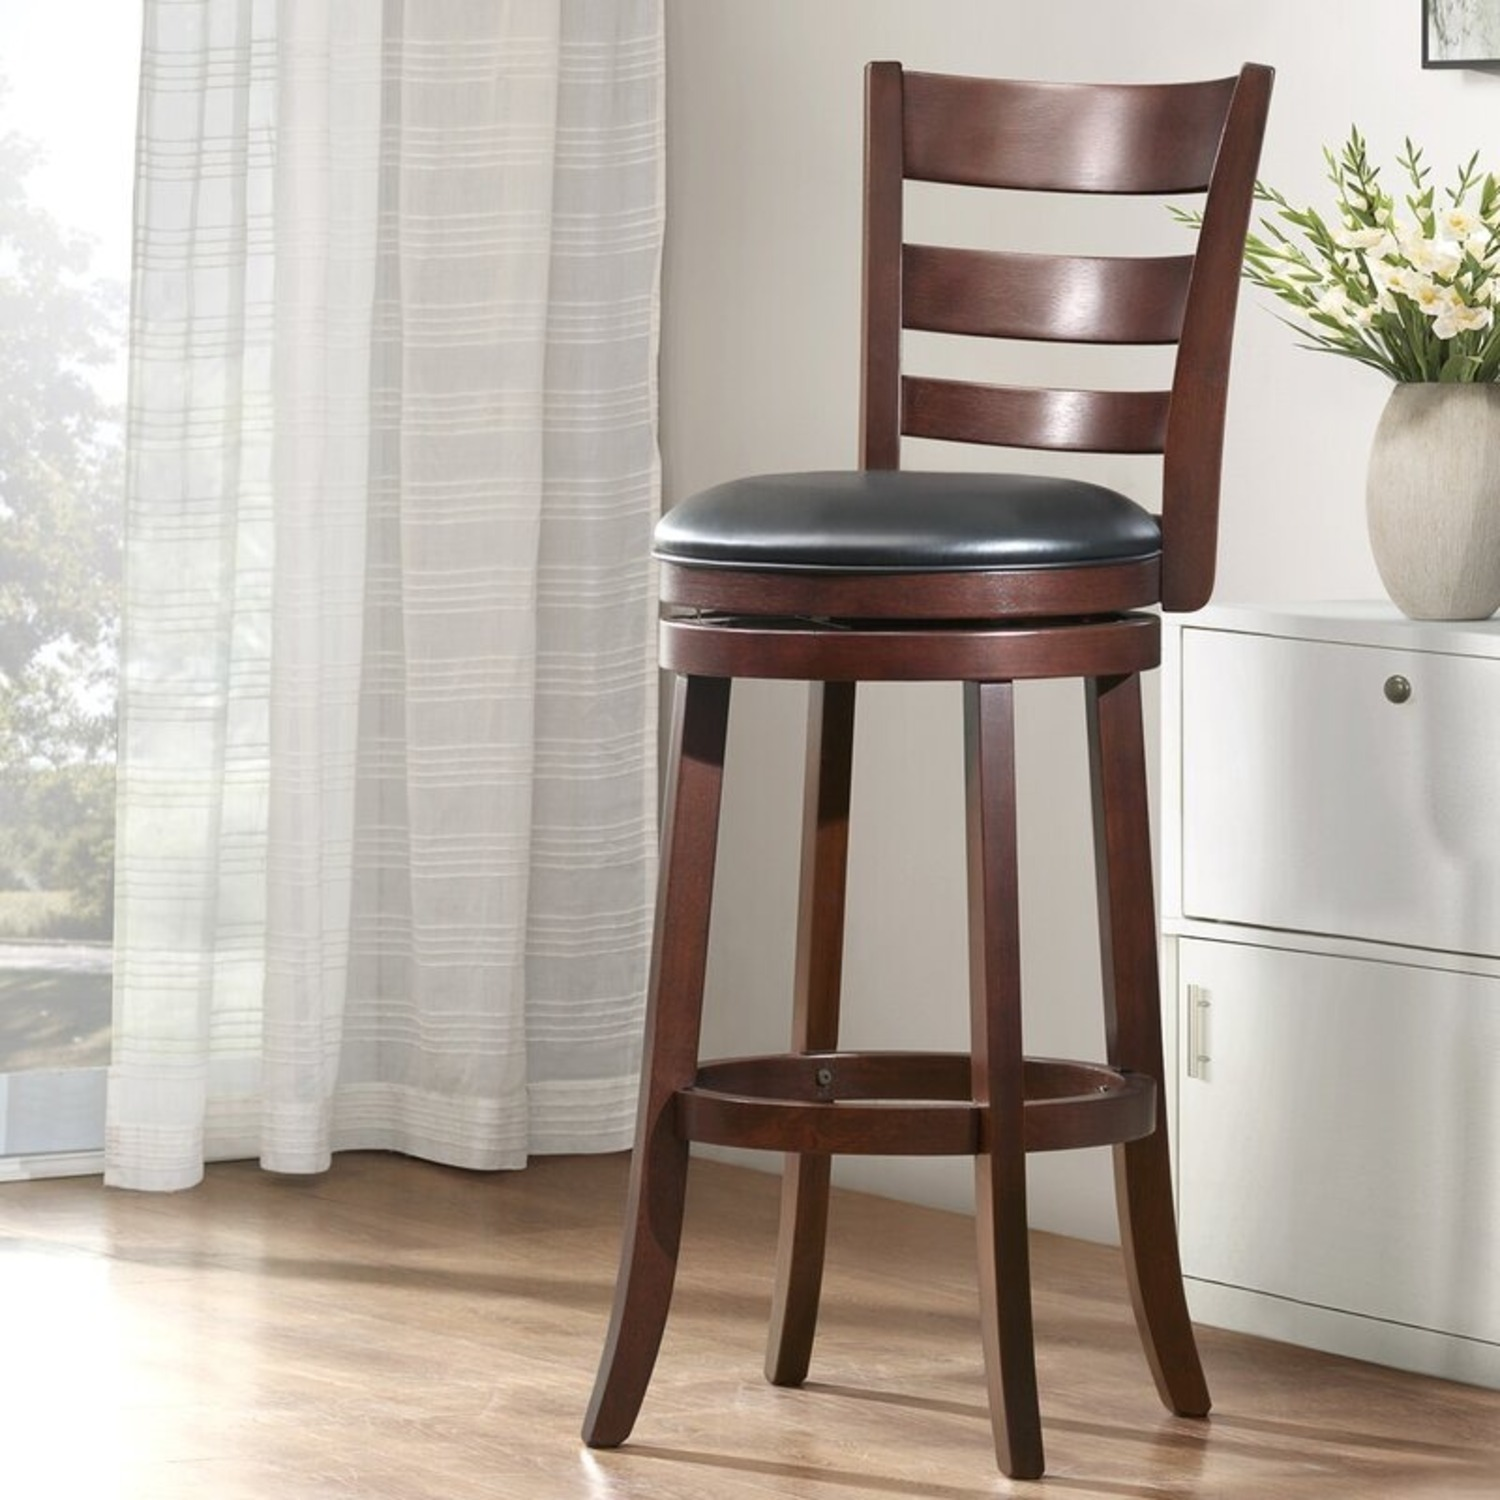 Bed Bath & Beyond Brown Swivel Counter Stool - image-1